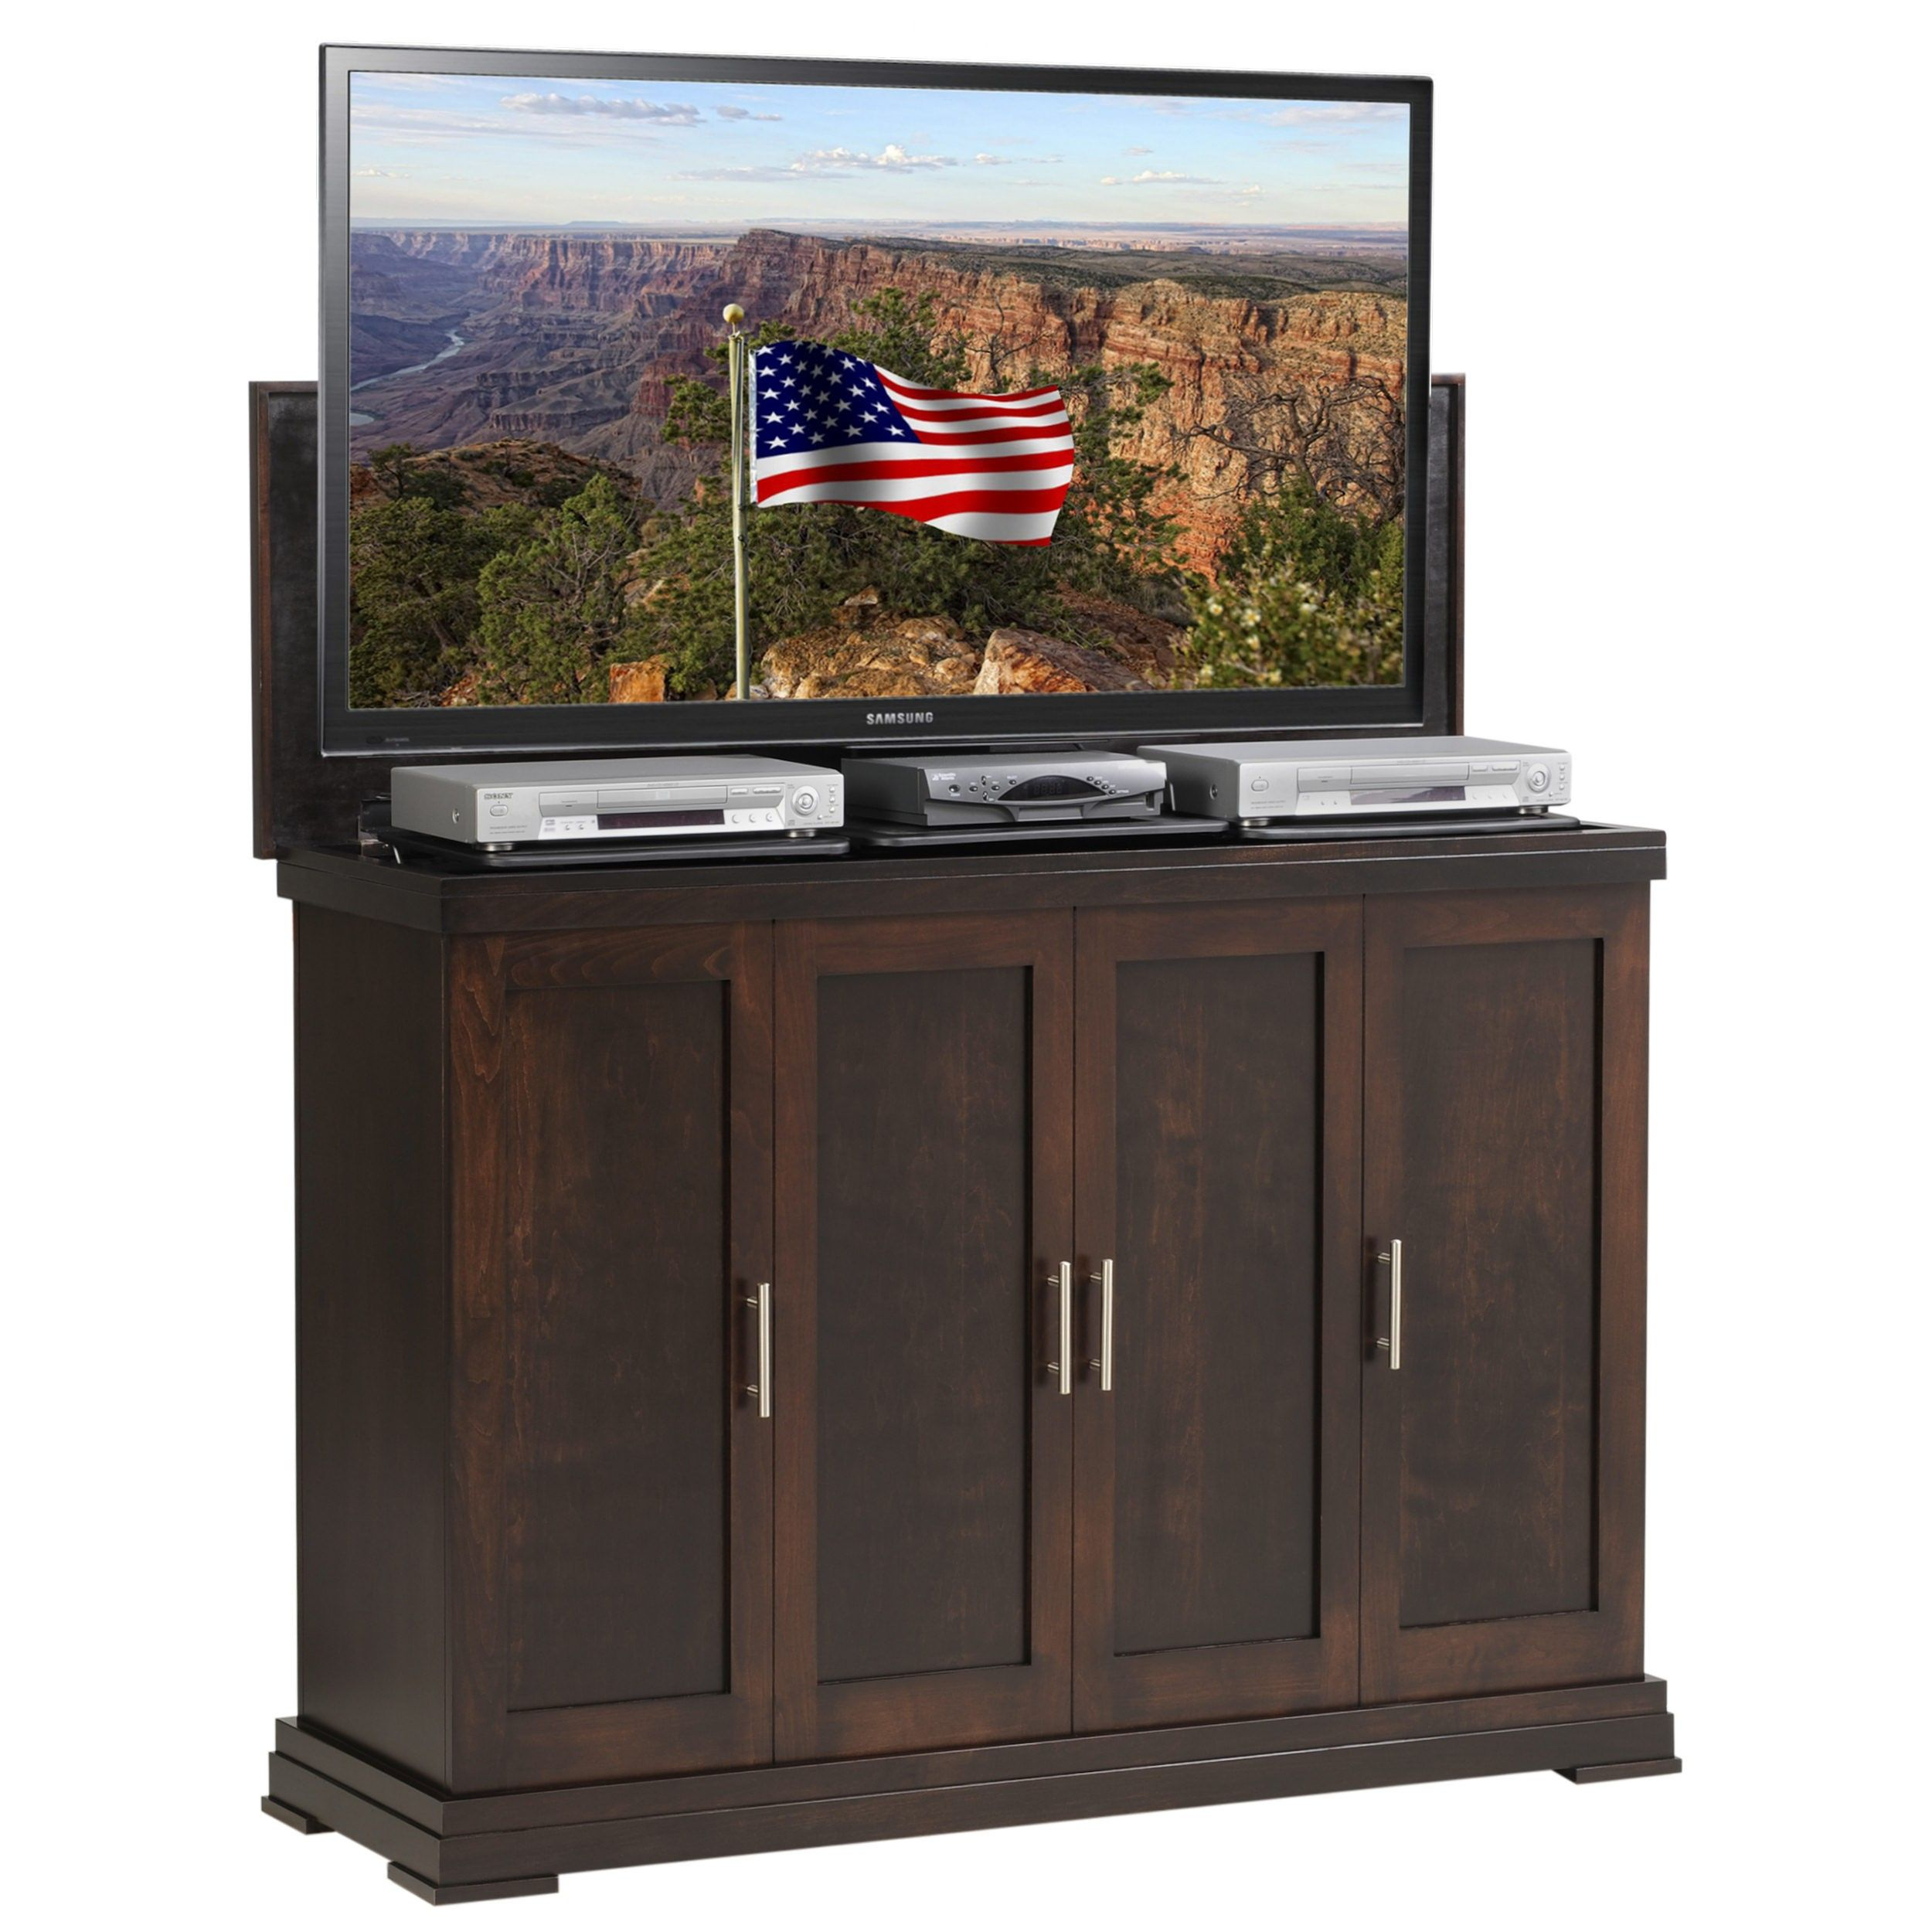 TV Lift Cabinet built in the United States by Amish craftsmen